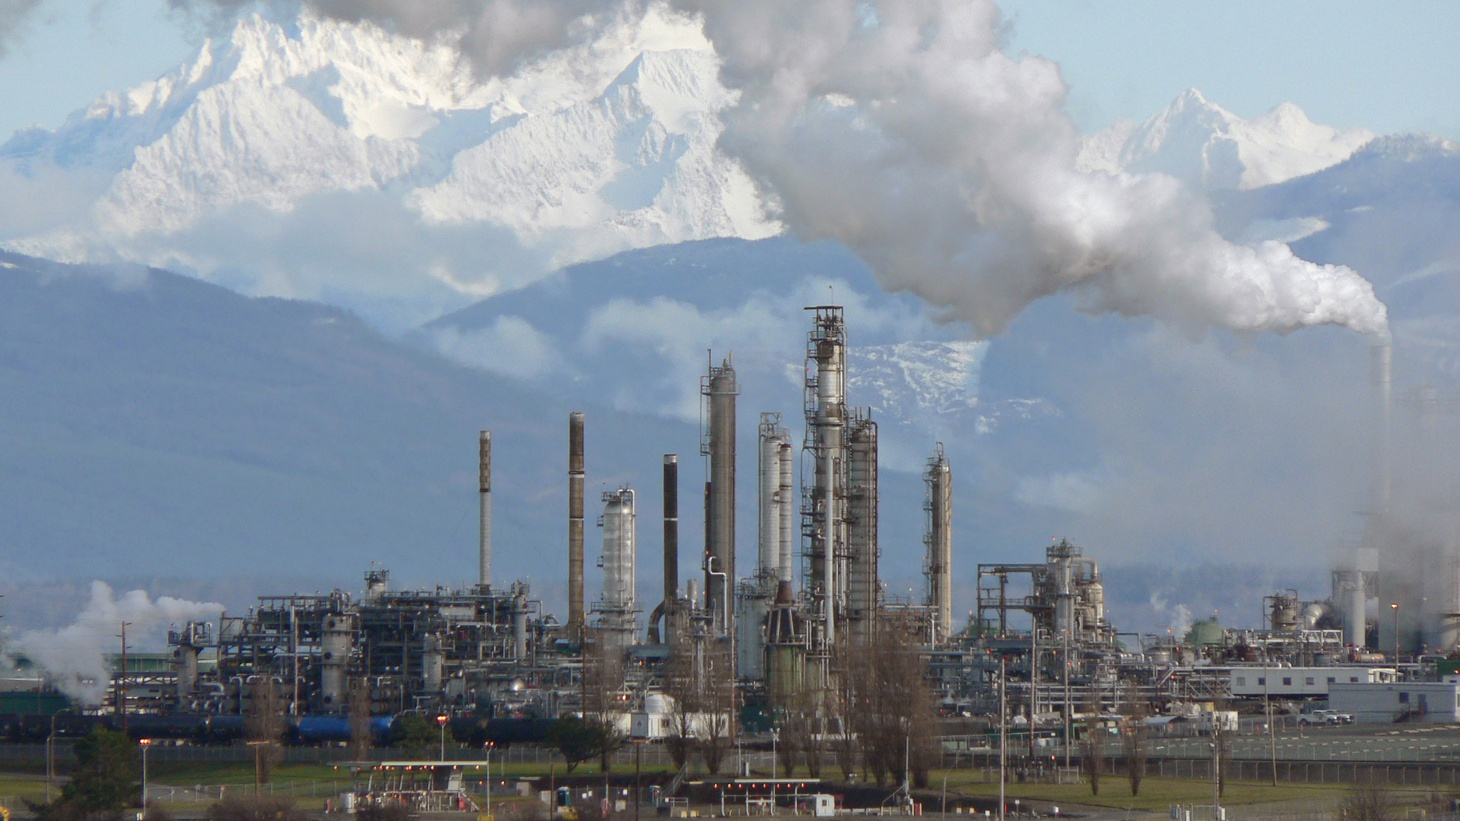 Tesoro Refinery in Anacortes, Washington Photo by  Walter Siegmund  